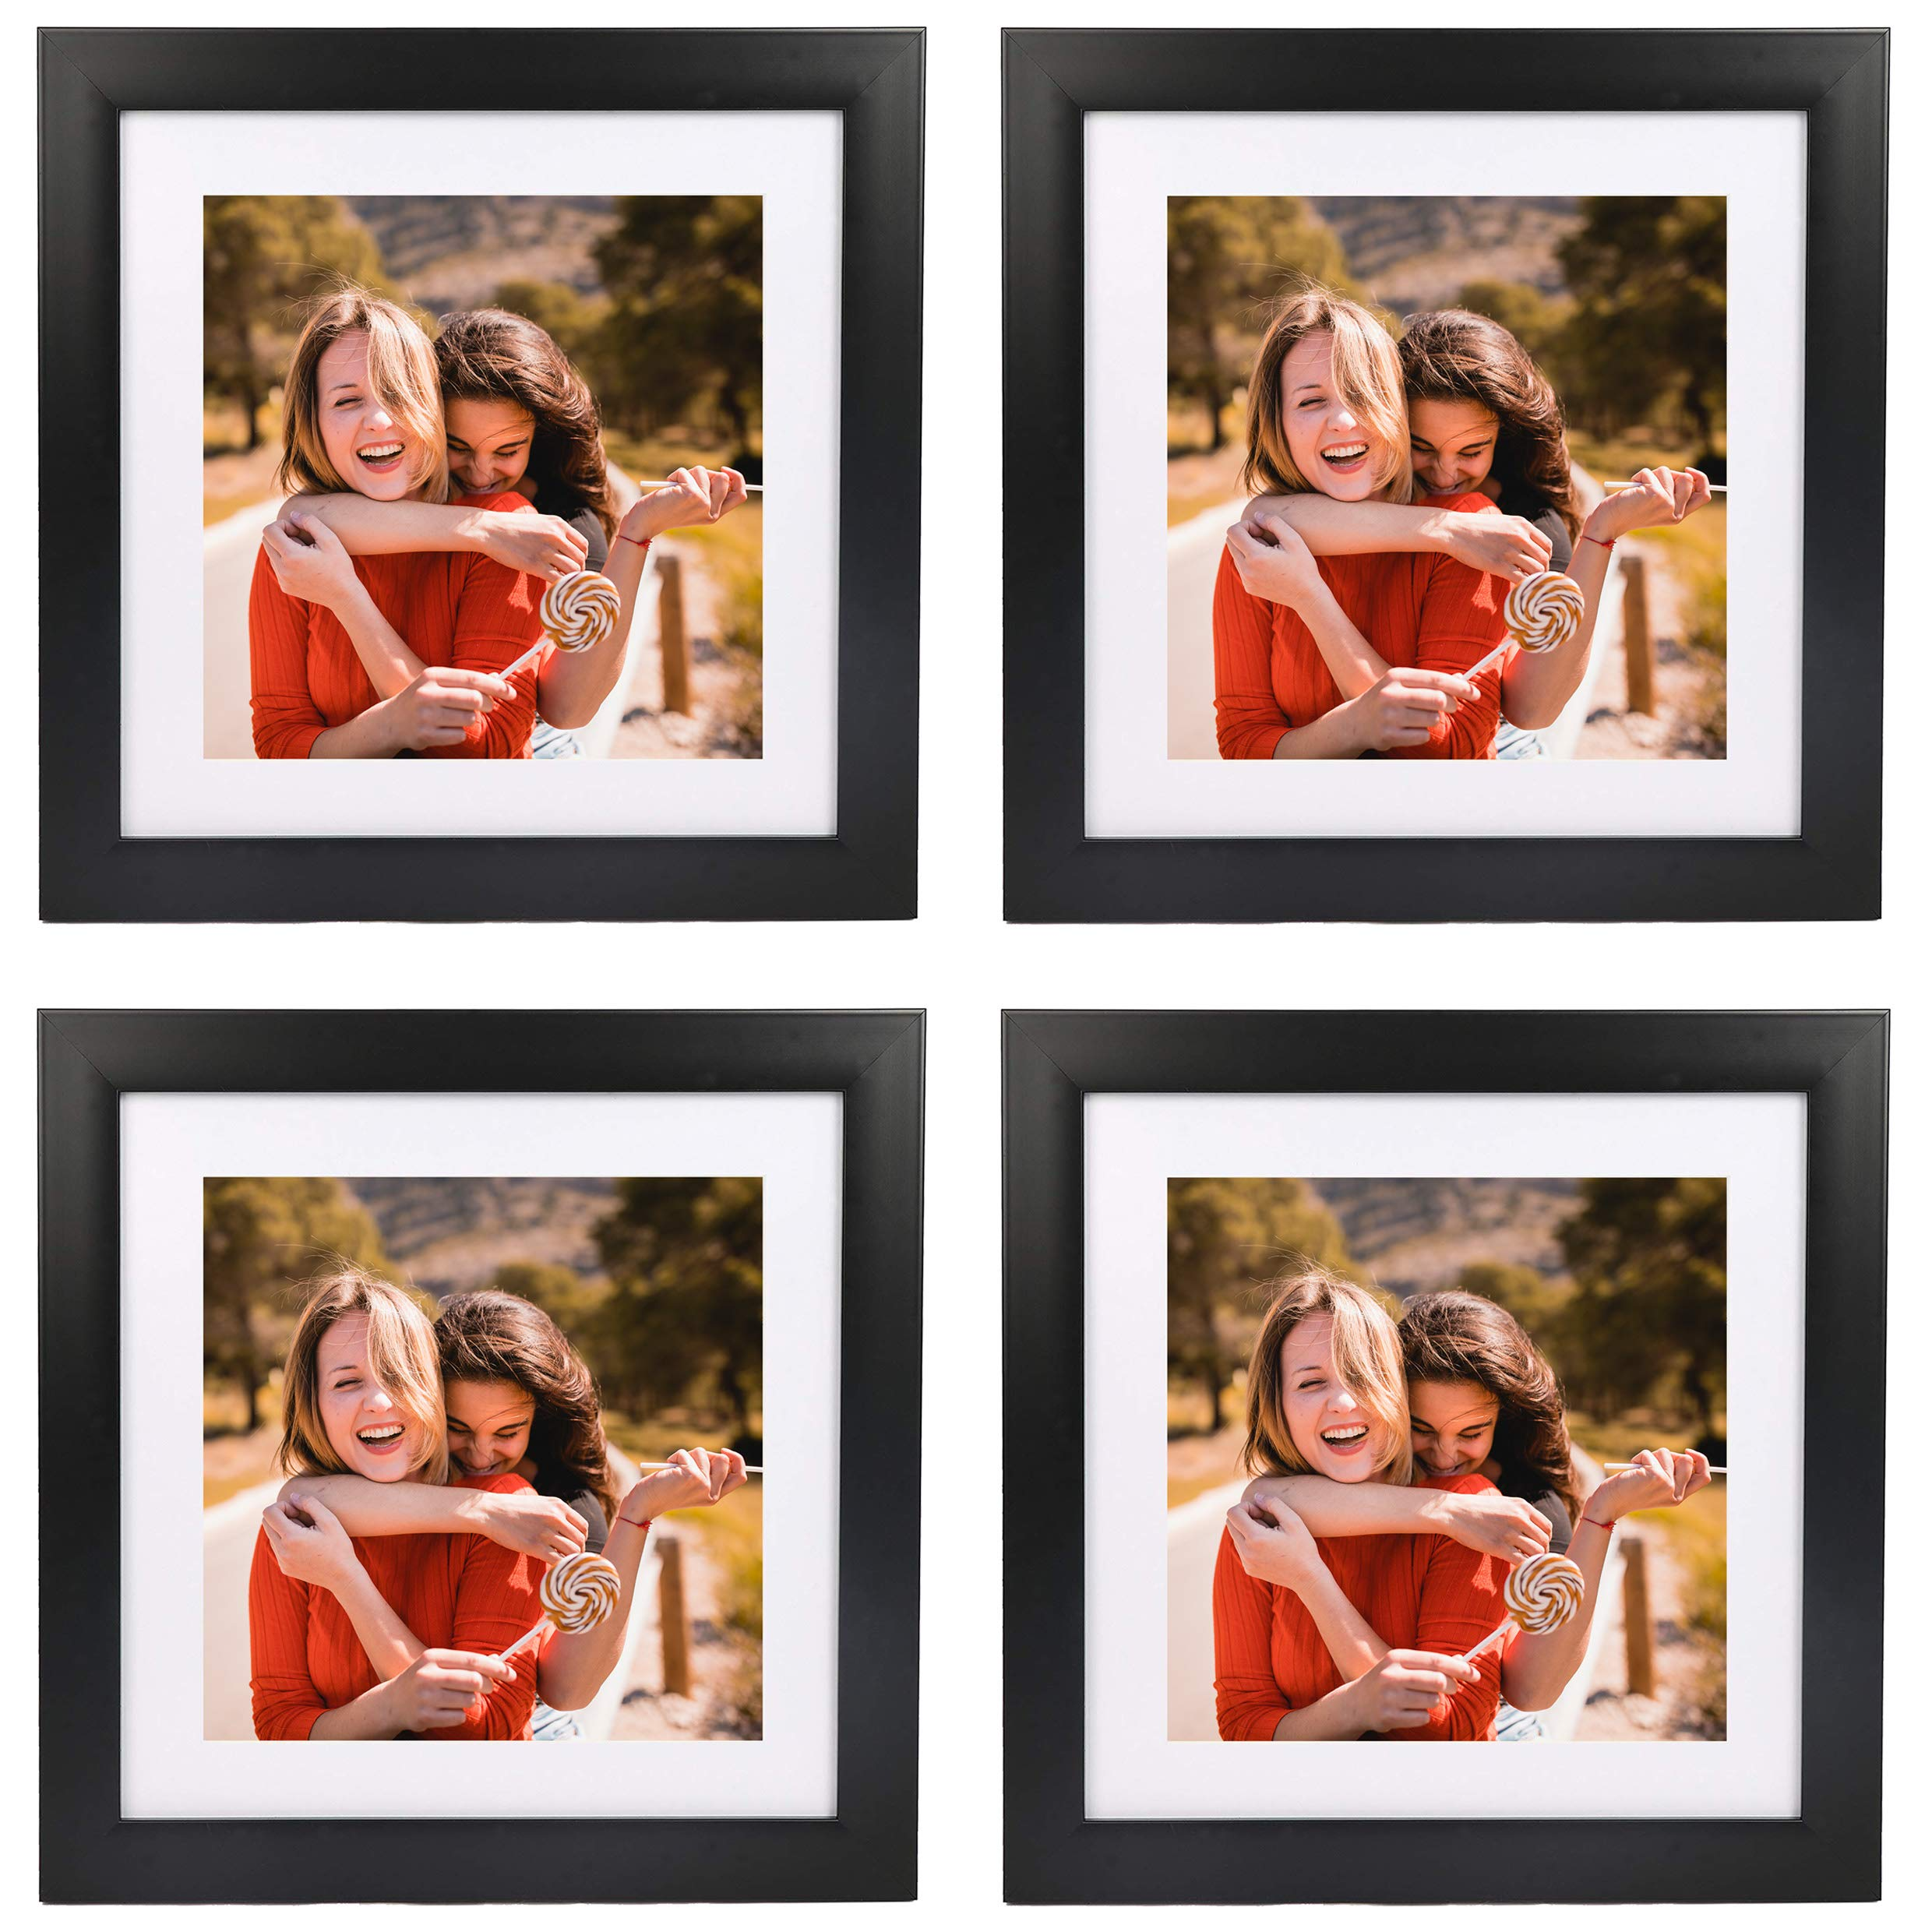 Beyond Your Thoughts 11X11 Picture Photo Instagram Frame (4 Pack) with Matted for 8X8 Black Color(Not Glass), Table Top and Wall Mounting Display by Beyond Your Thoughts